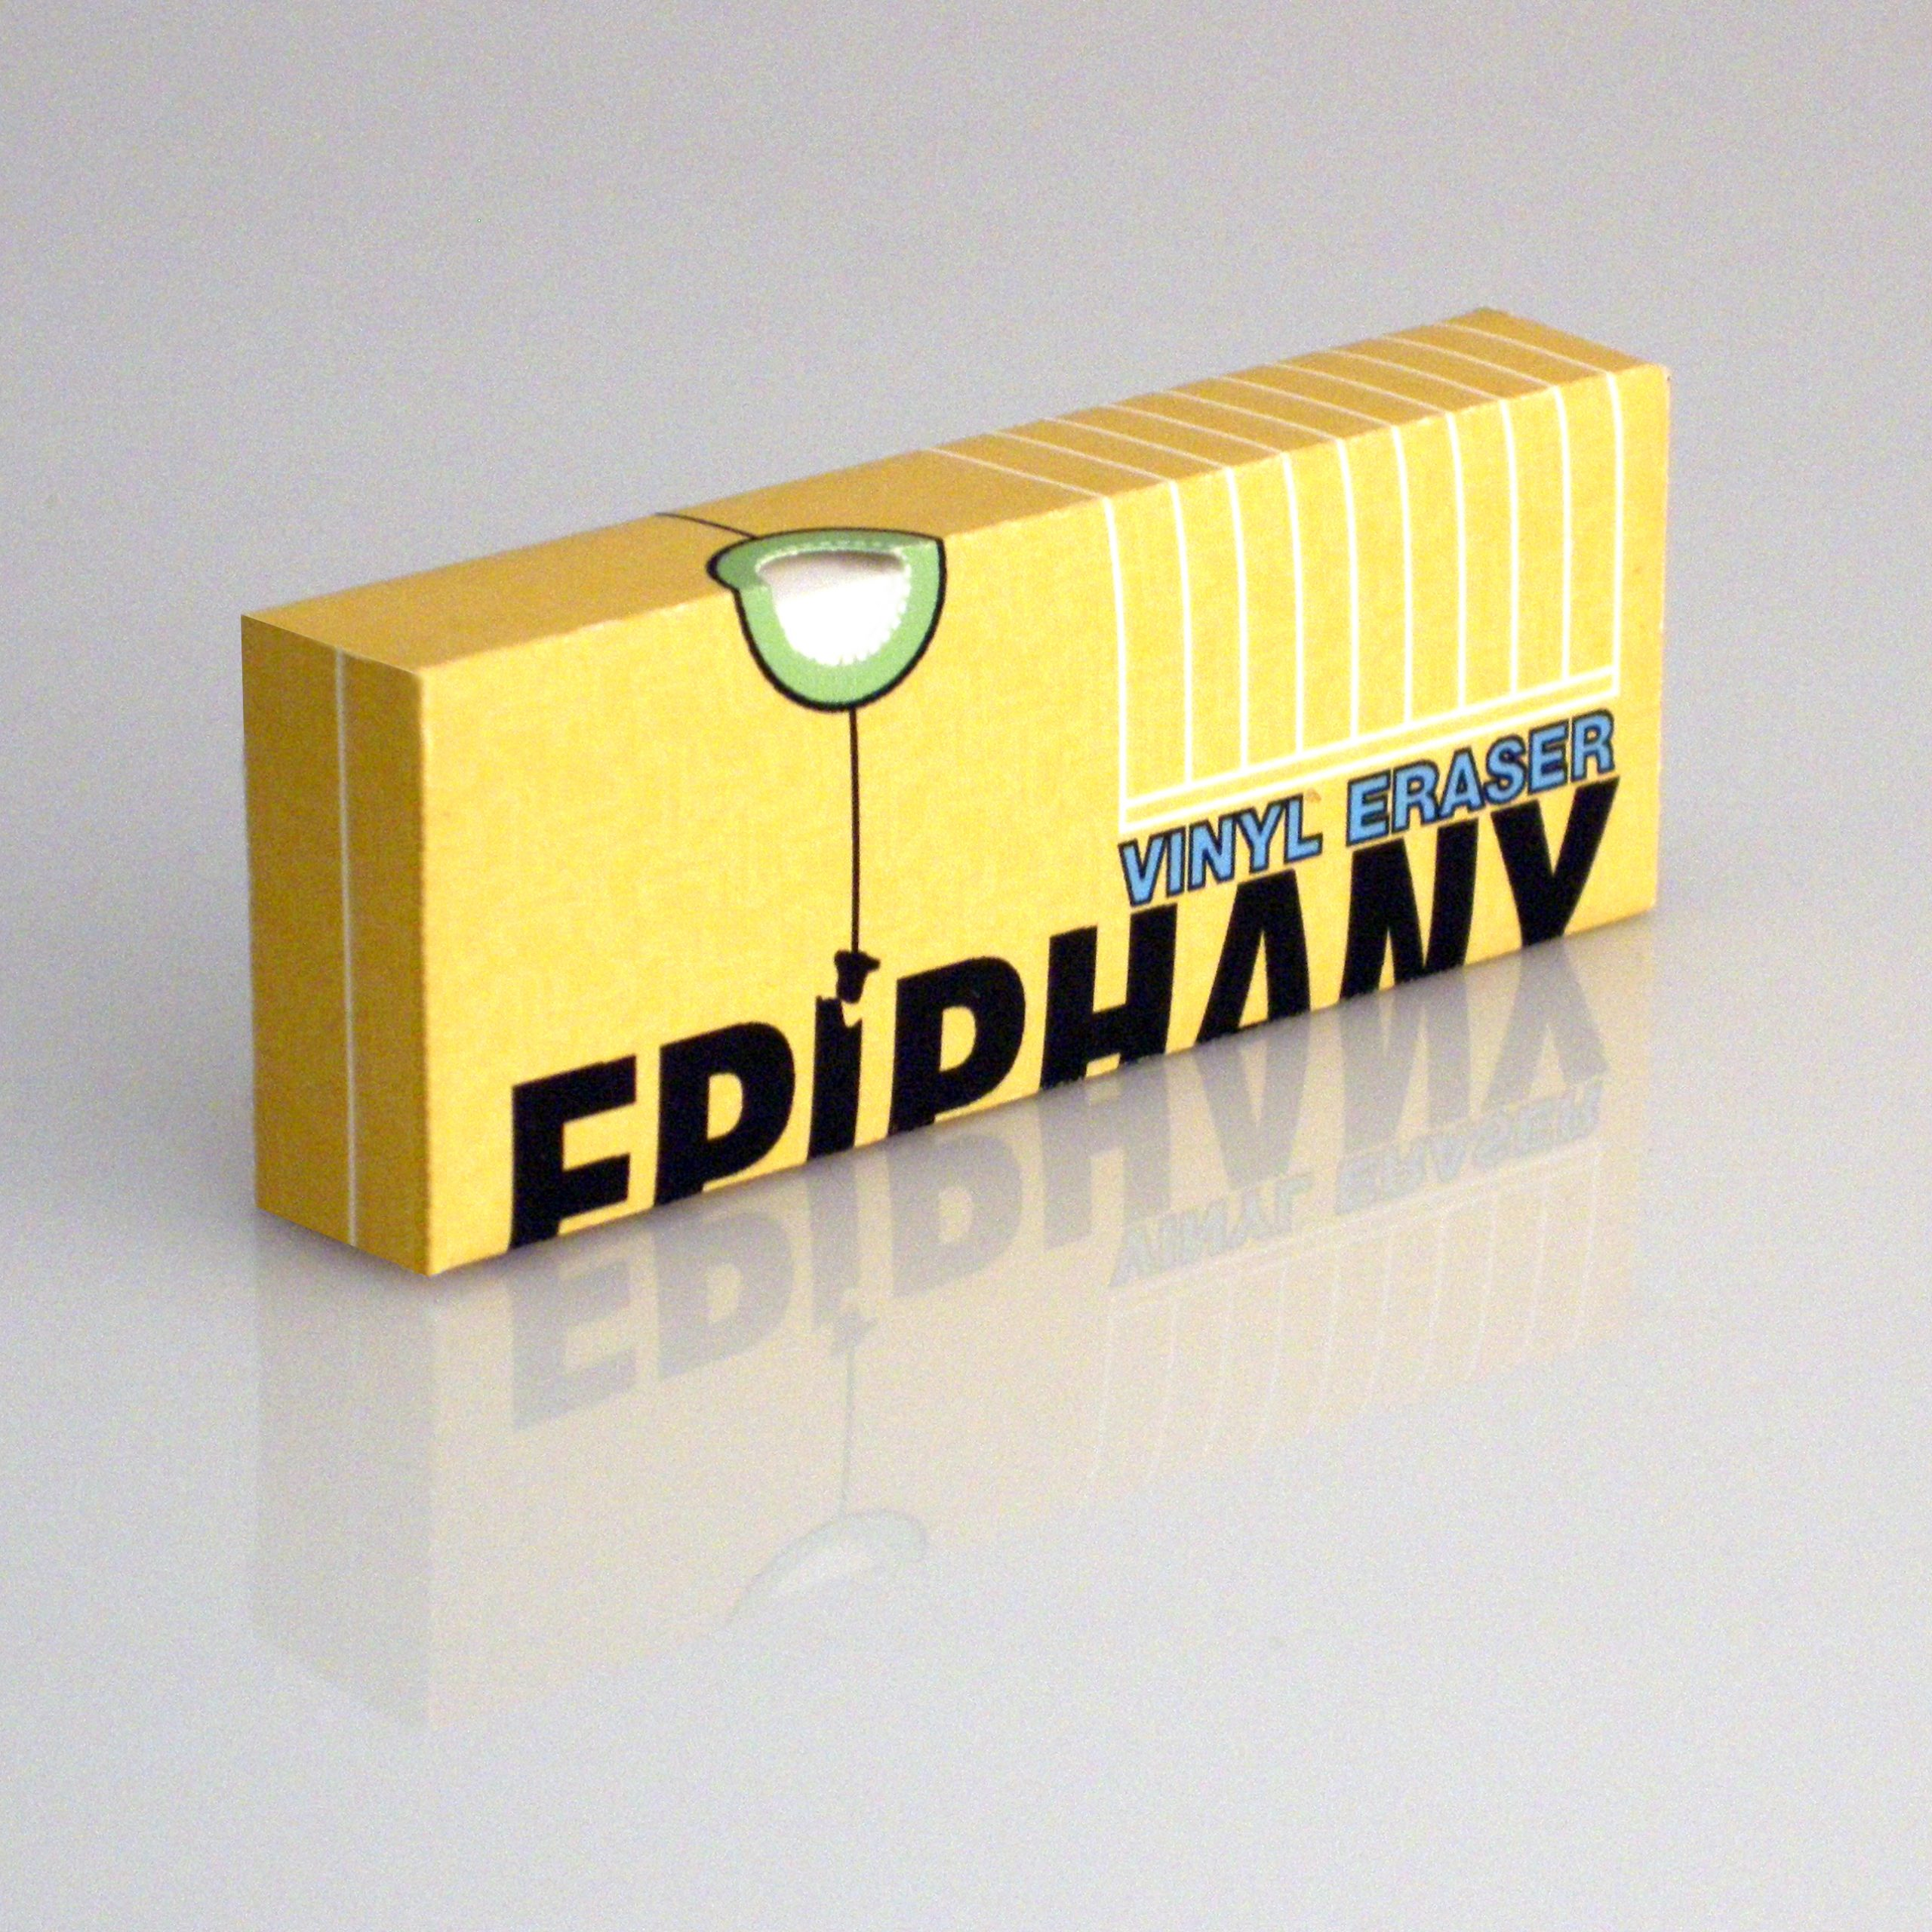 Letraset Product Packaging